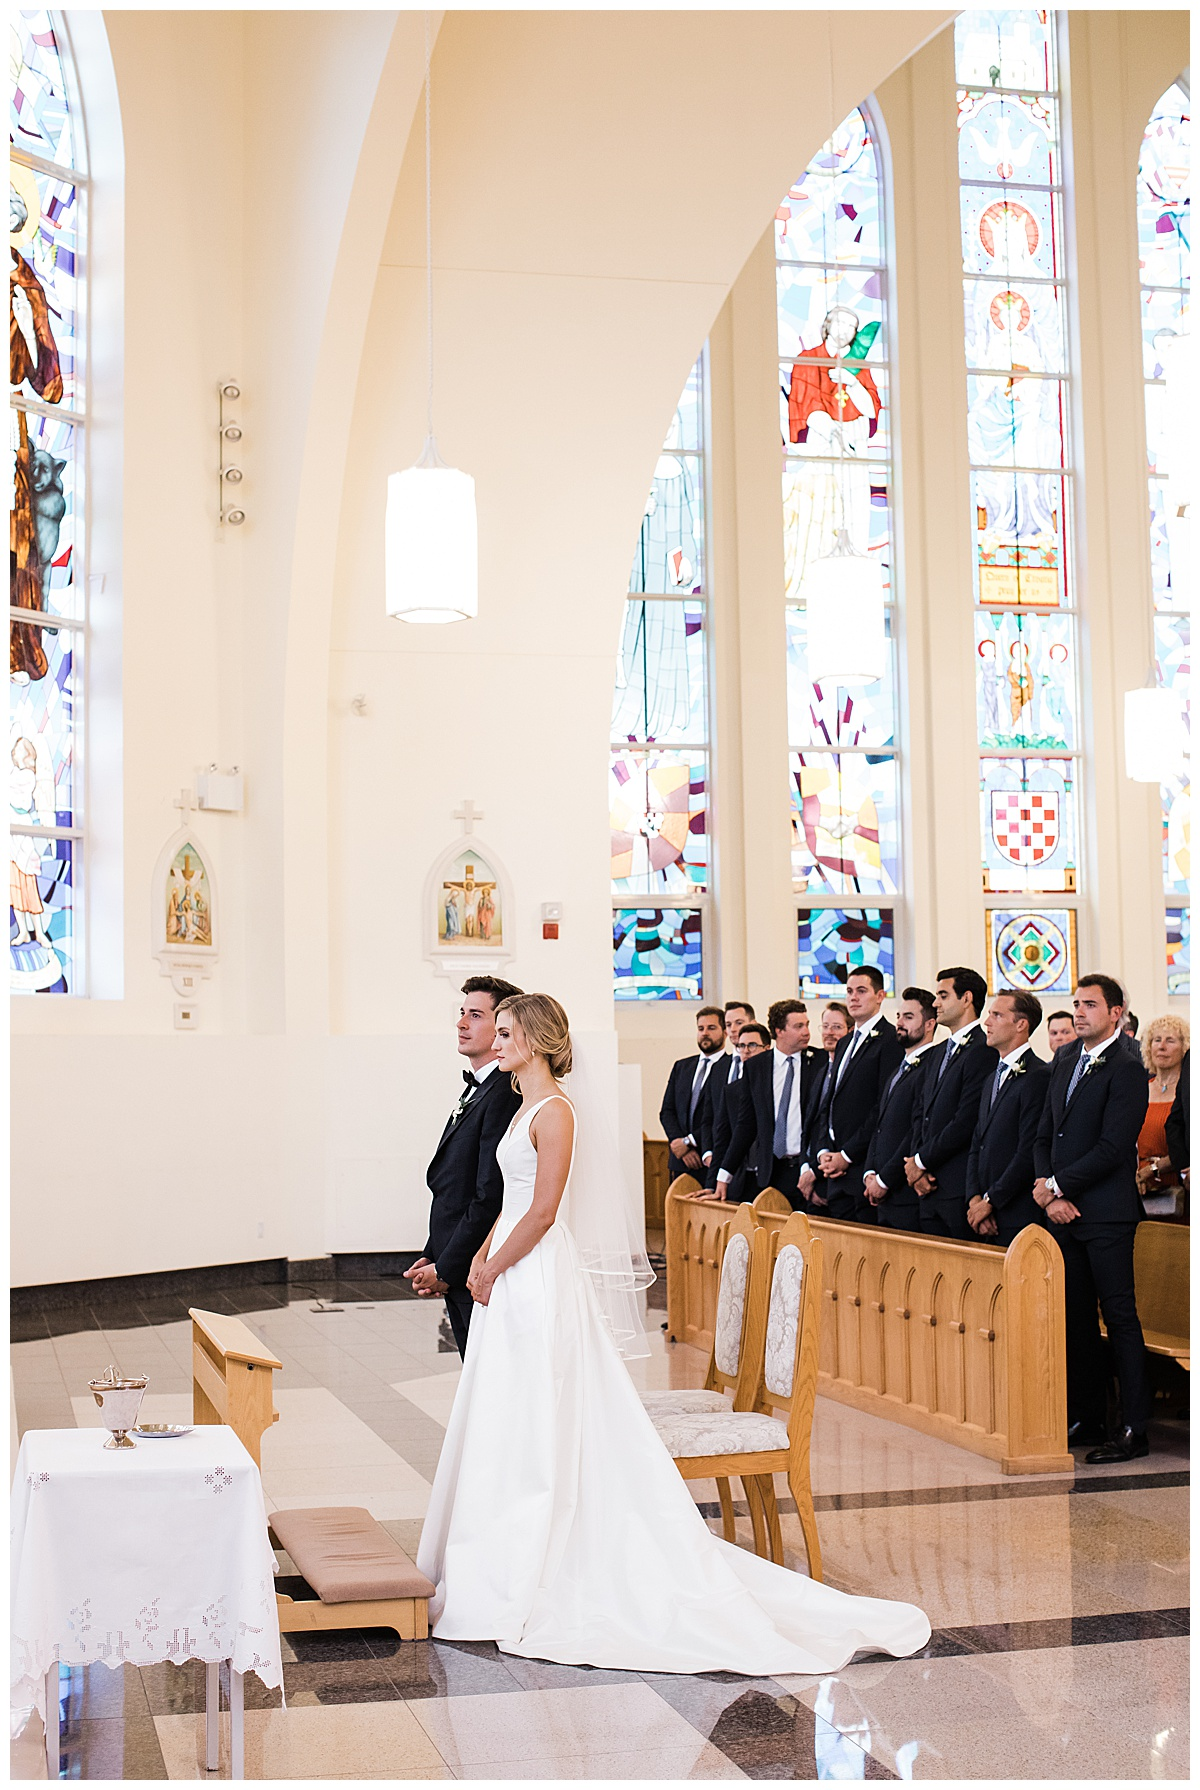 Bride and groom stand at alter| Ontario wedding| Toronto wedding photography| 3photography